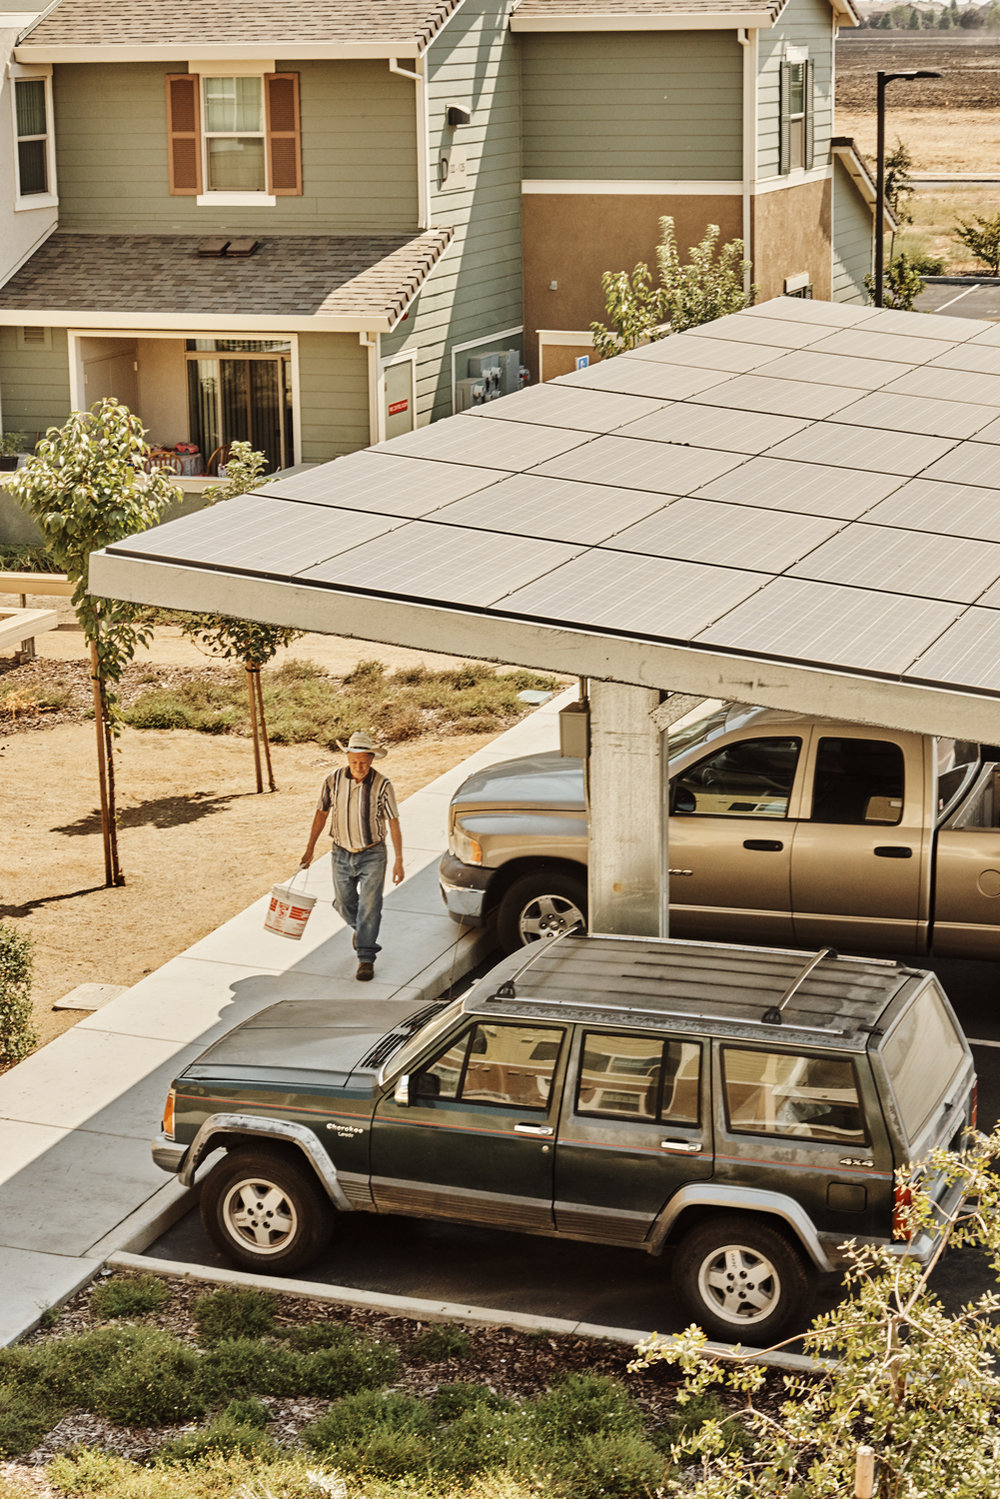 Solar energy in low-income communities for WIRED